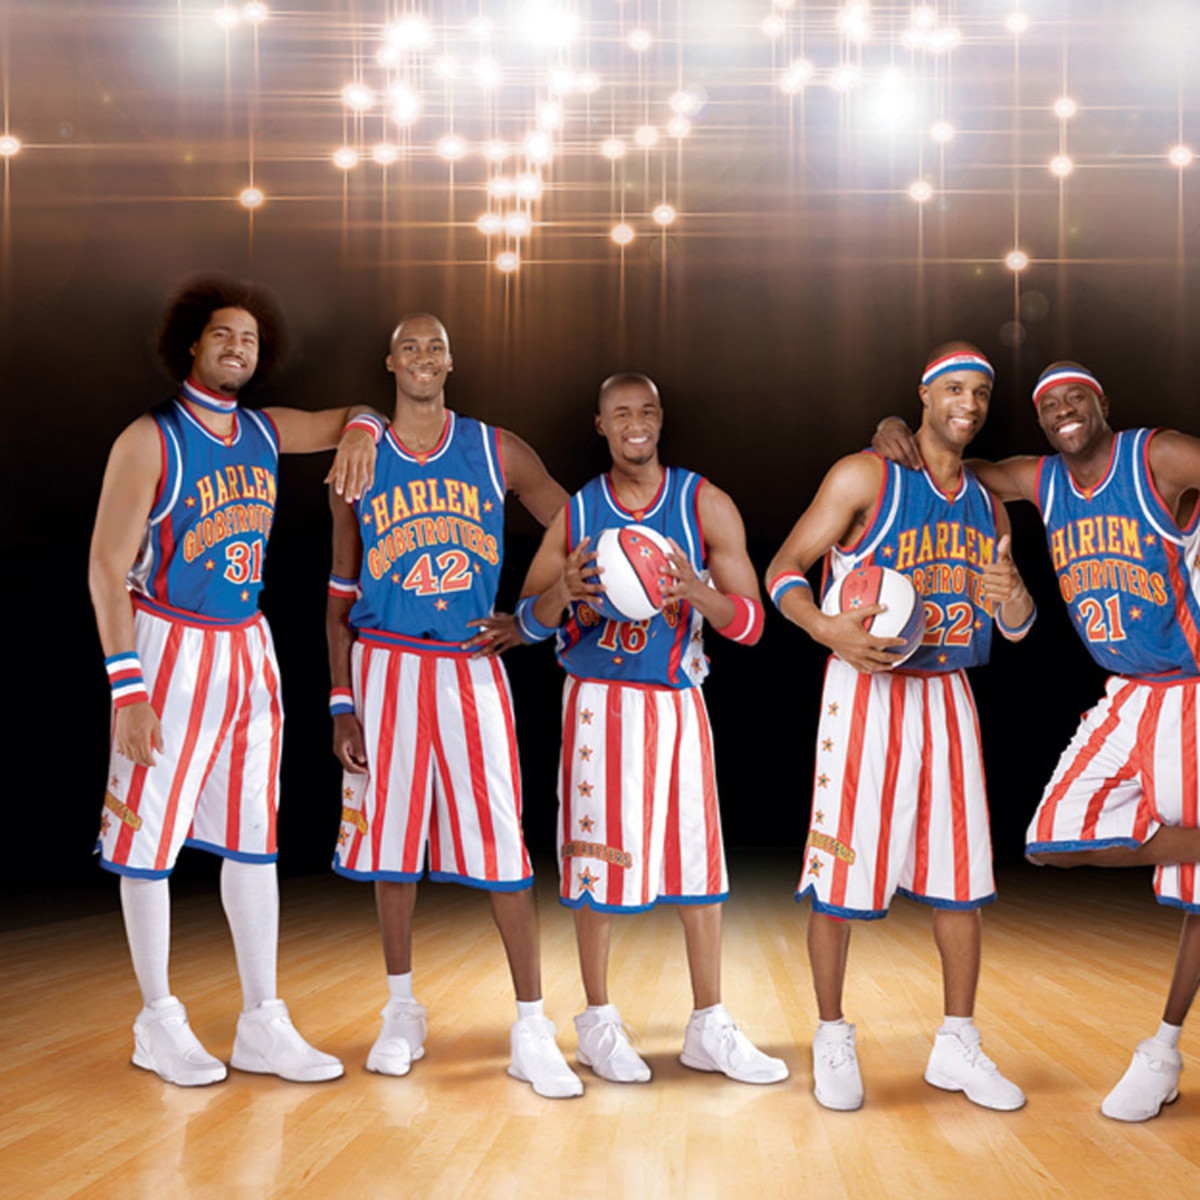 Harlem Globetrotters and Super Bowl watch parties top the best even